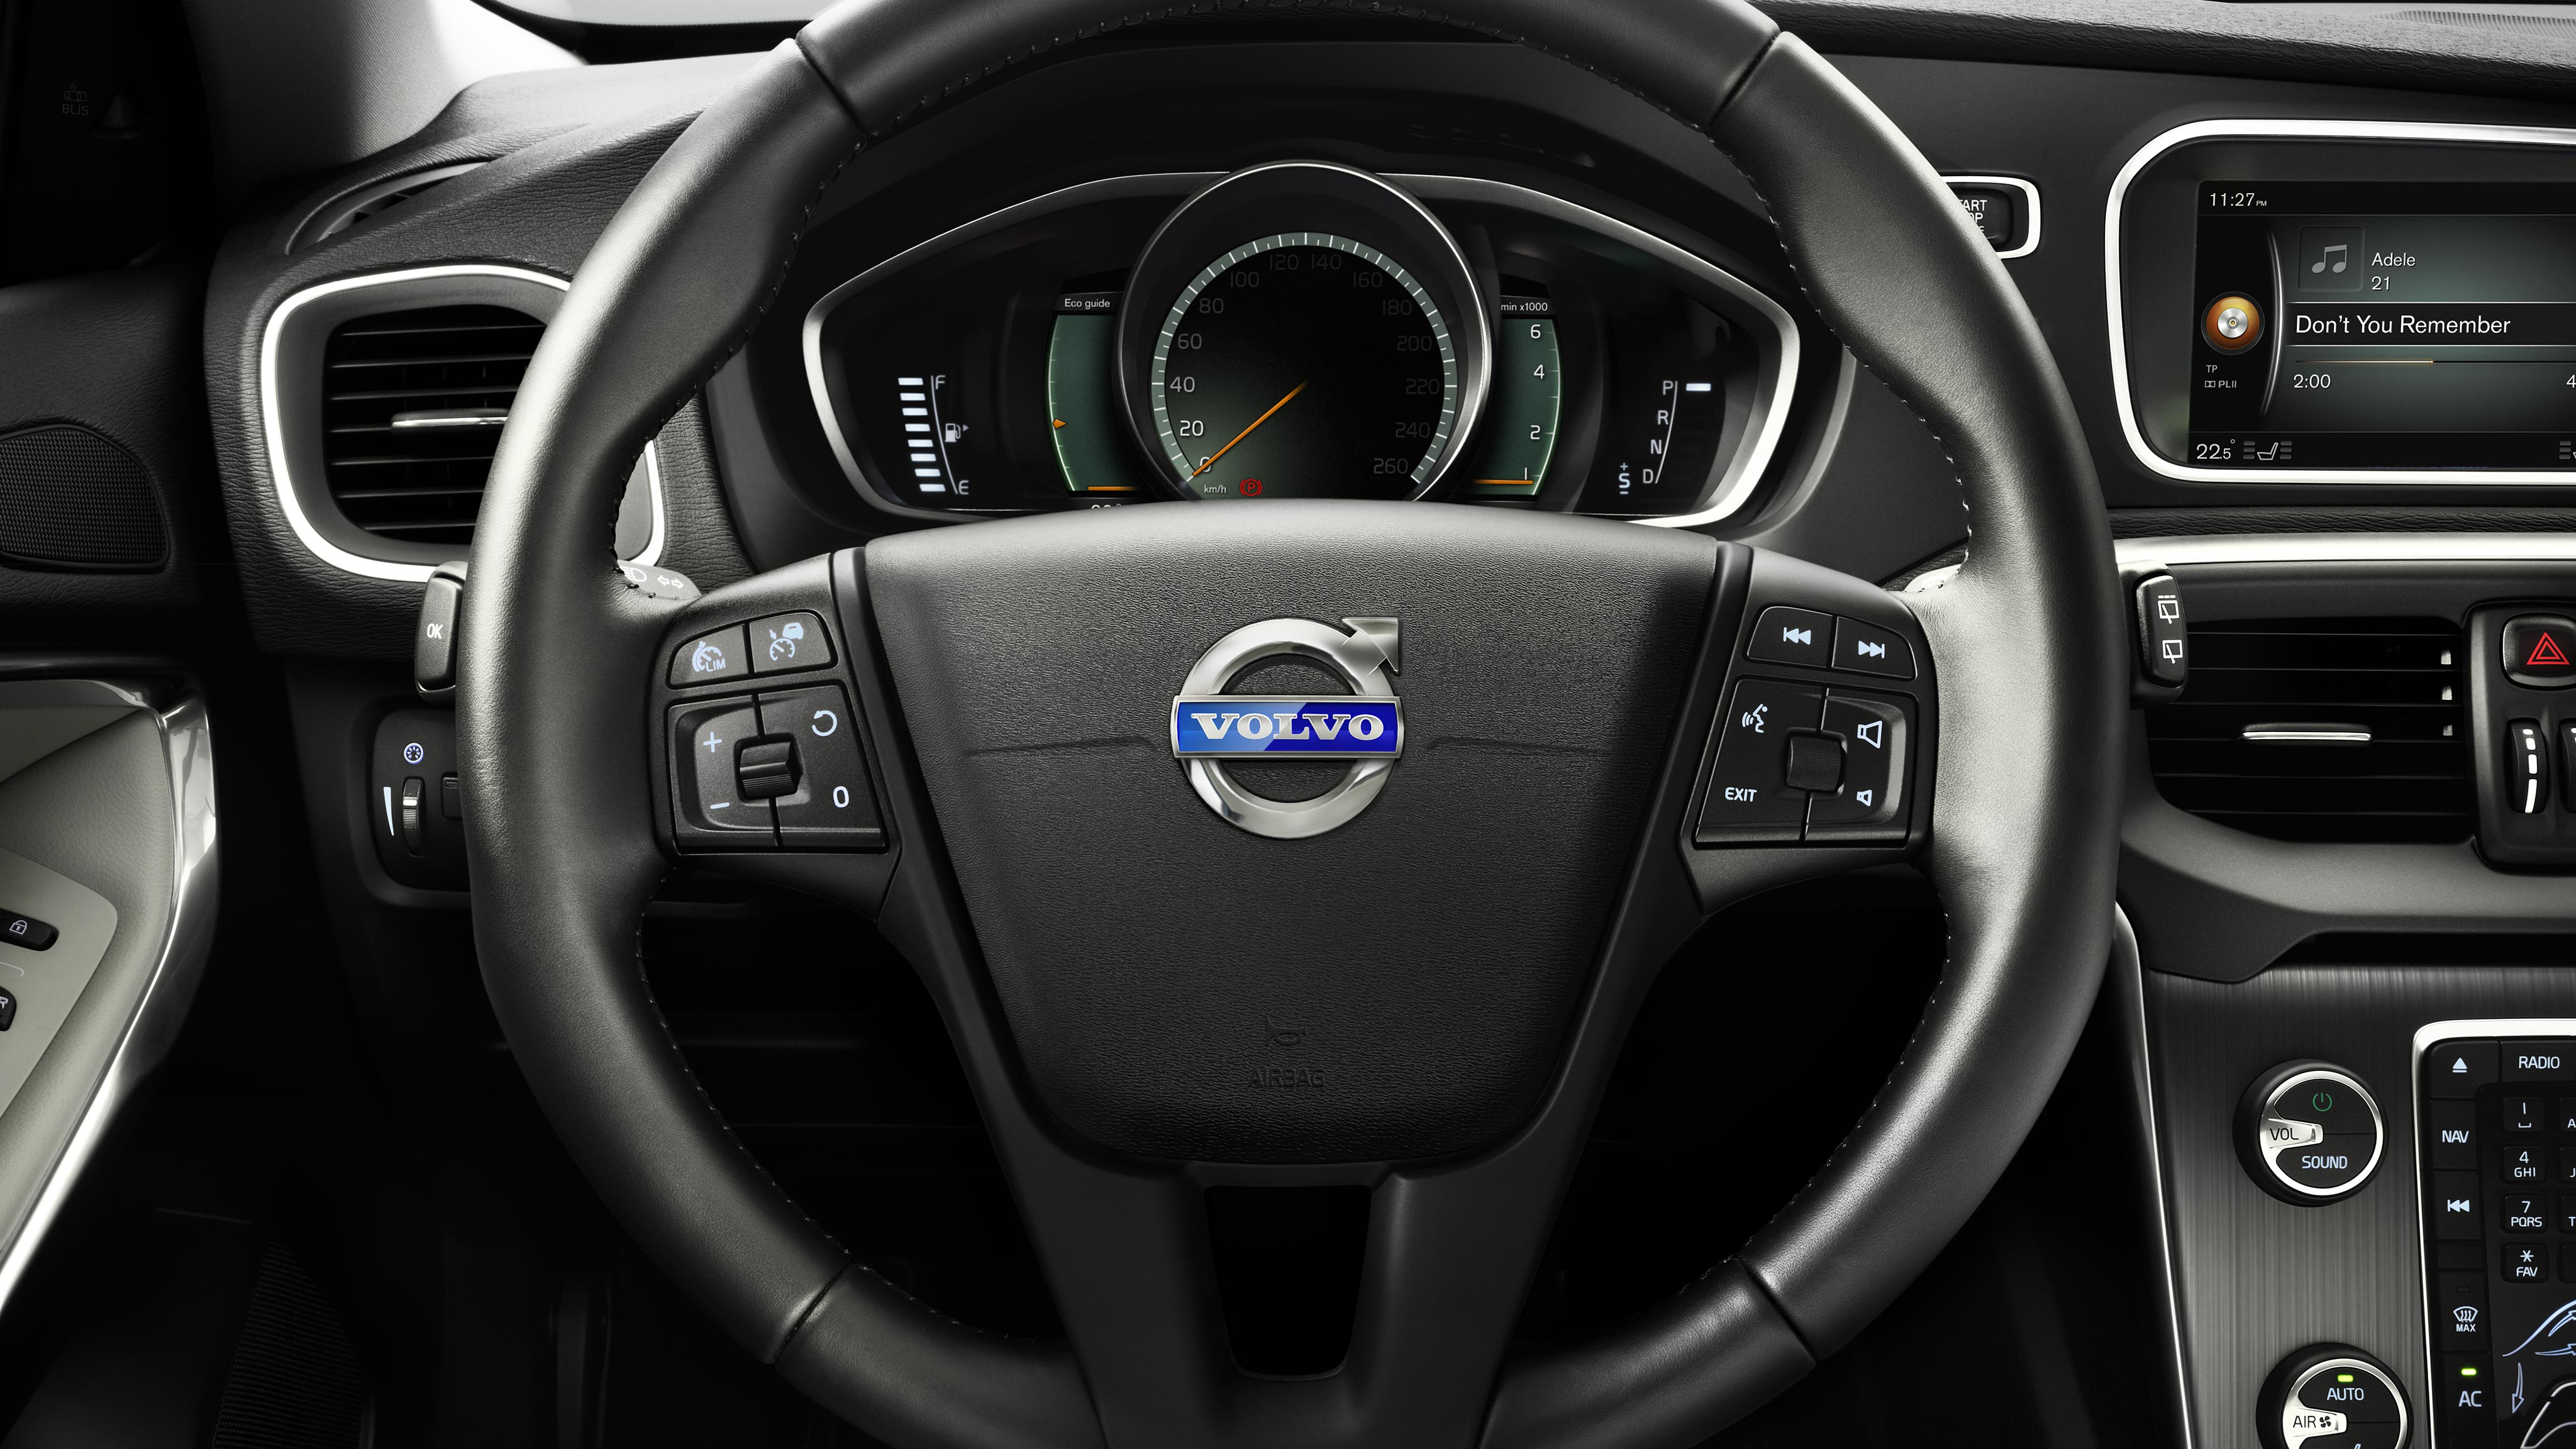 https://assets.volvocars.com/en-kw/~/media/shared-assets/images/galleries/new-cars/v40/gallery/gallery_2_interior/gallery2_vcc06469.jpg